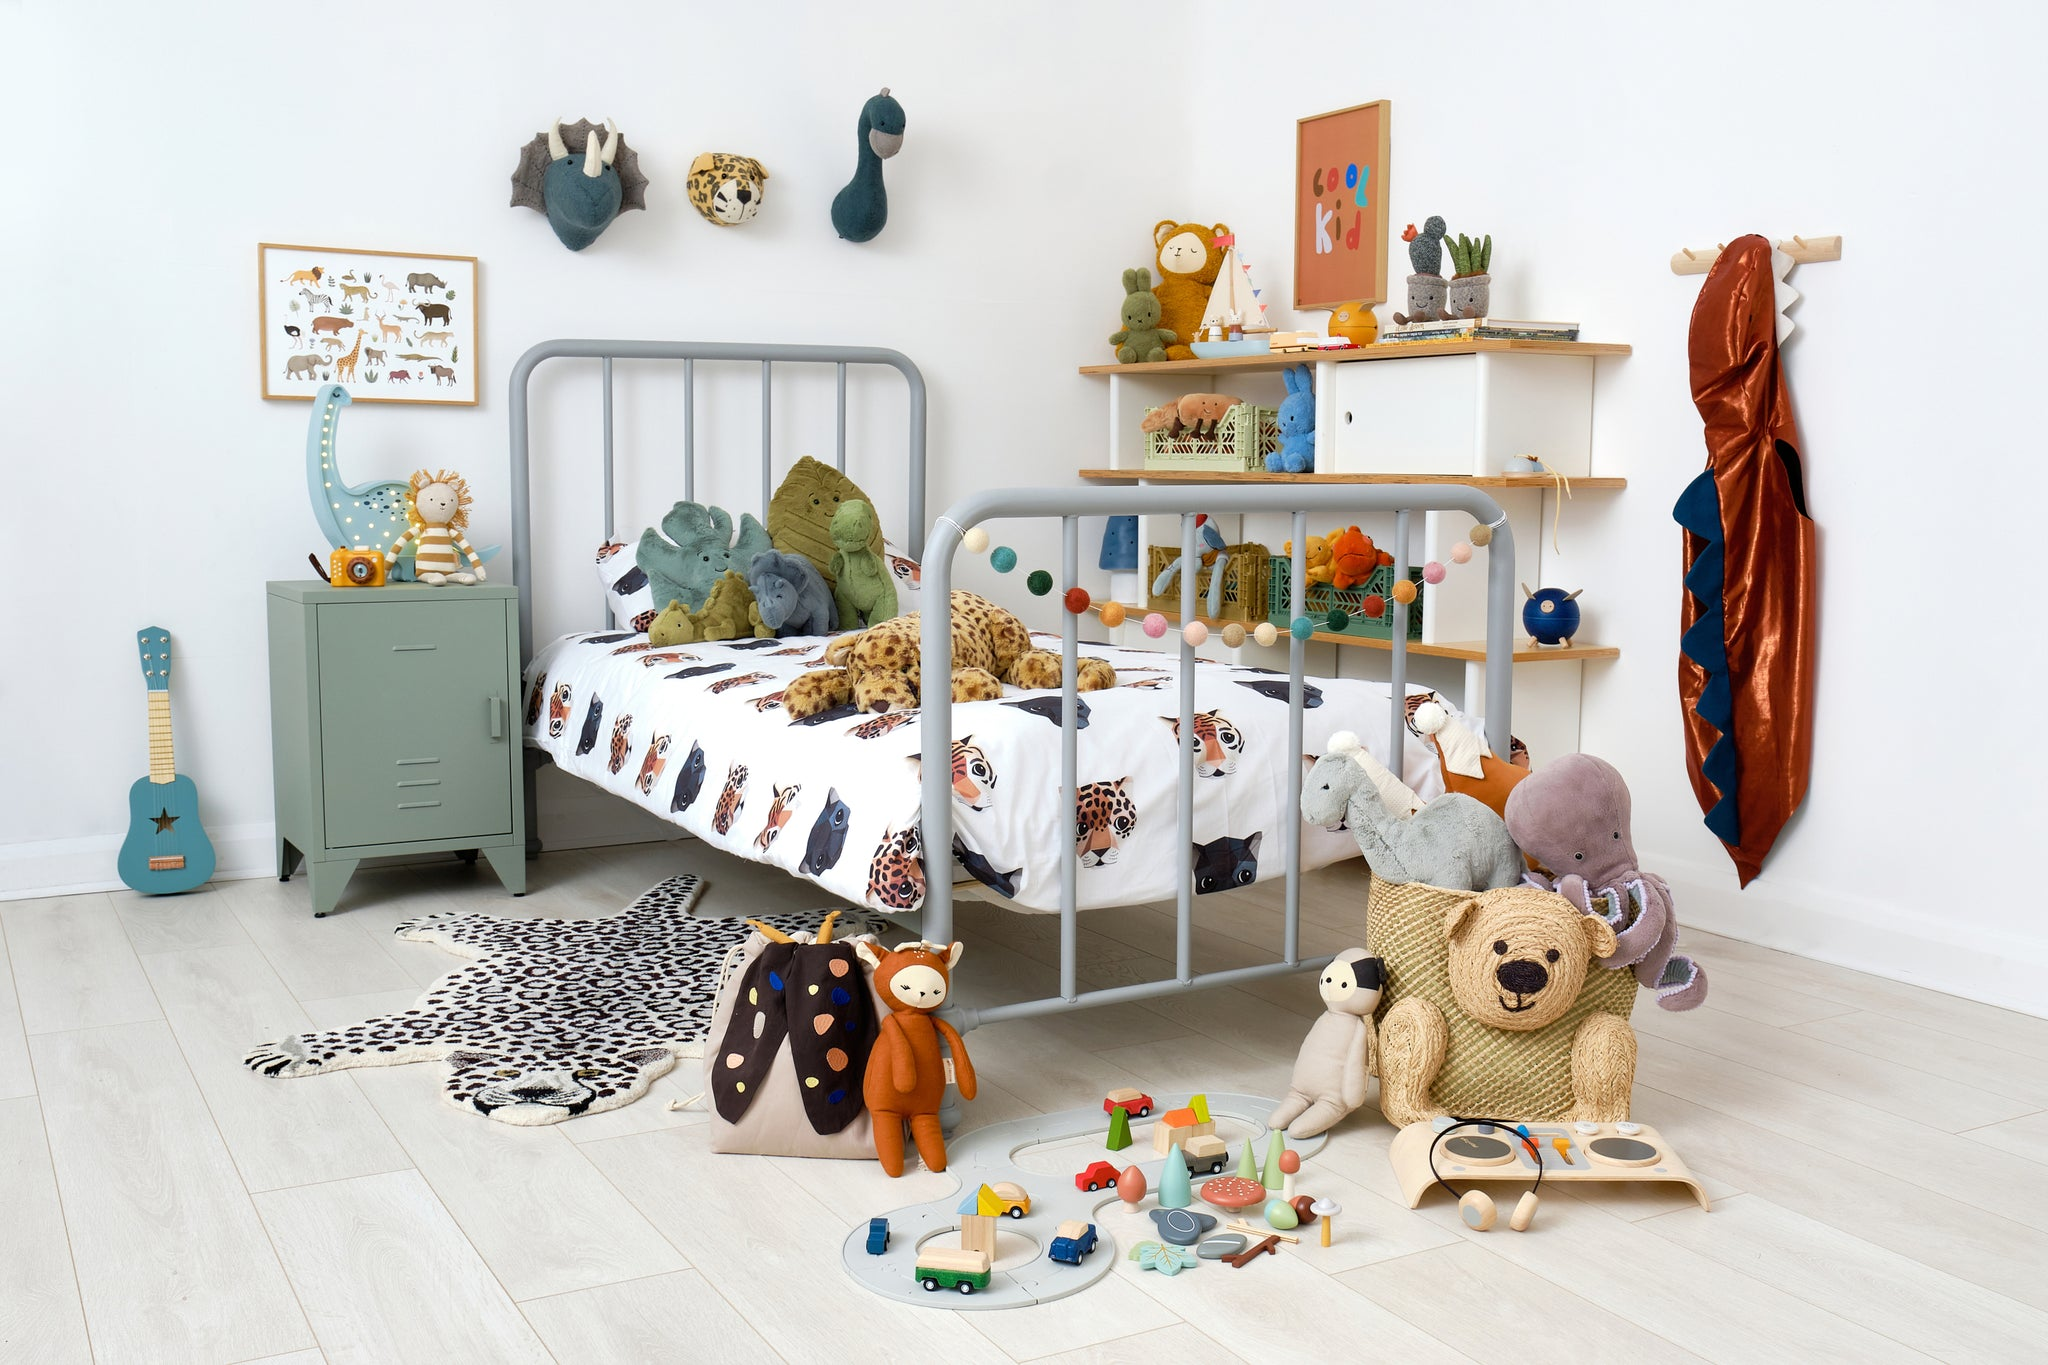 Dino-Land Bedtime Story and Children's Room, by Bobby Rabbit.